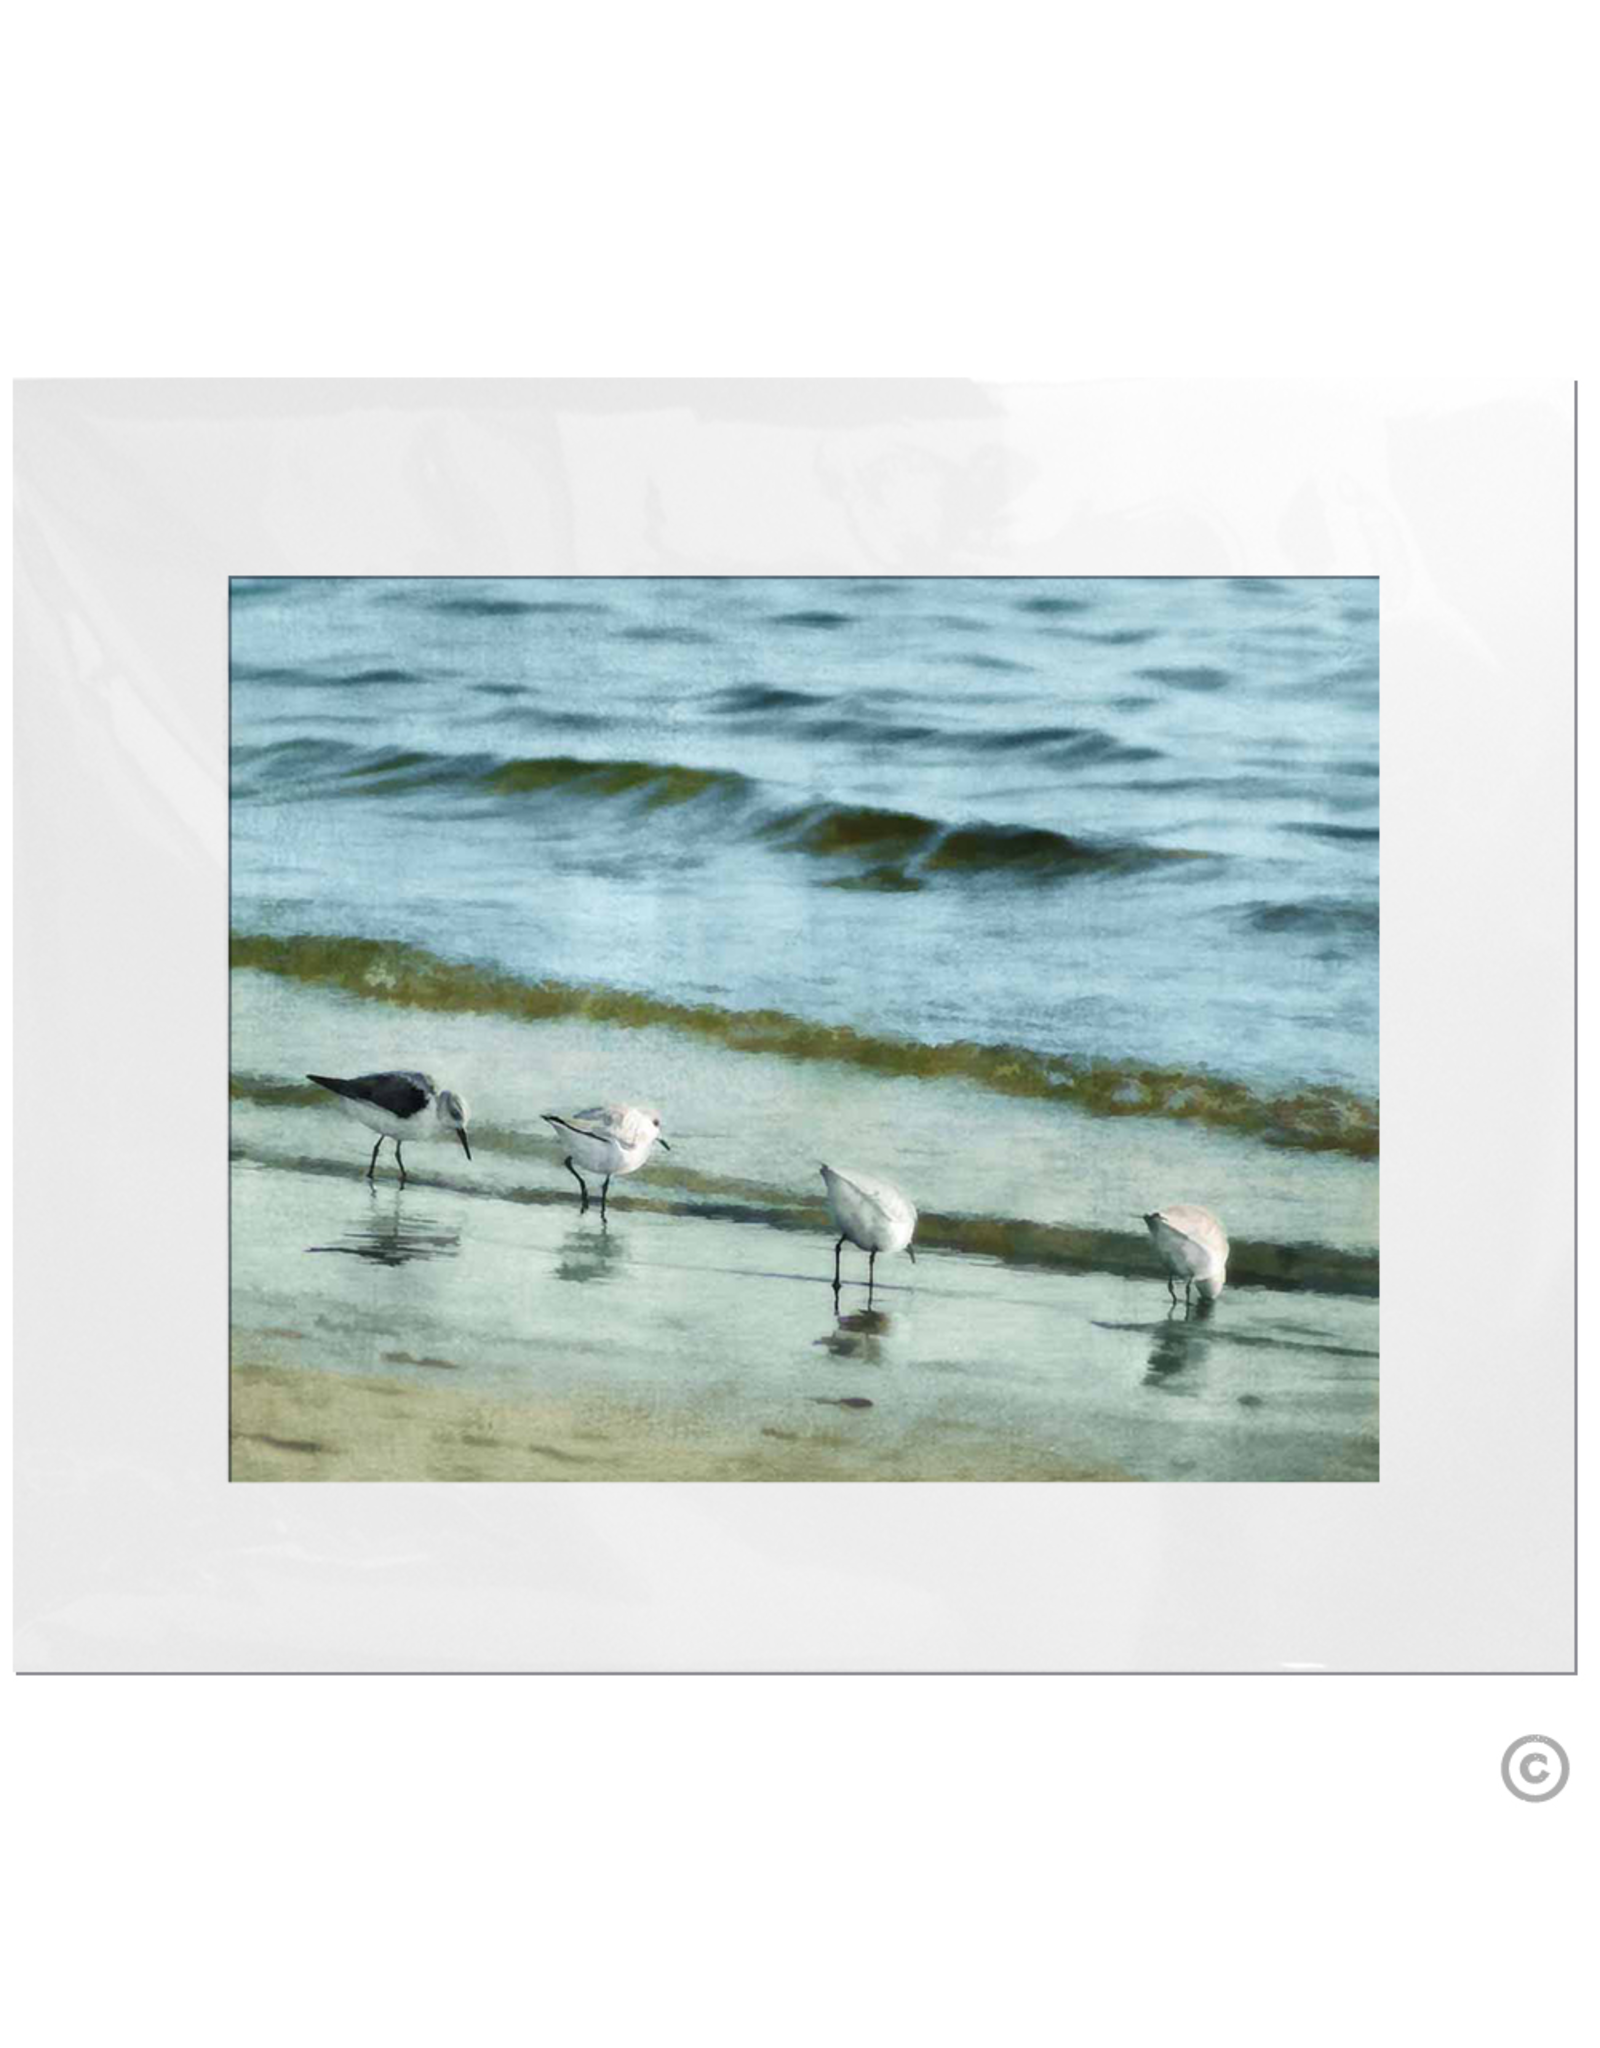 Maureen Terrien Photography Art Print 4 Sandpipers I 11x14 - 8x10 Matted